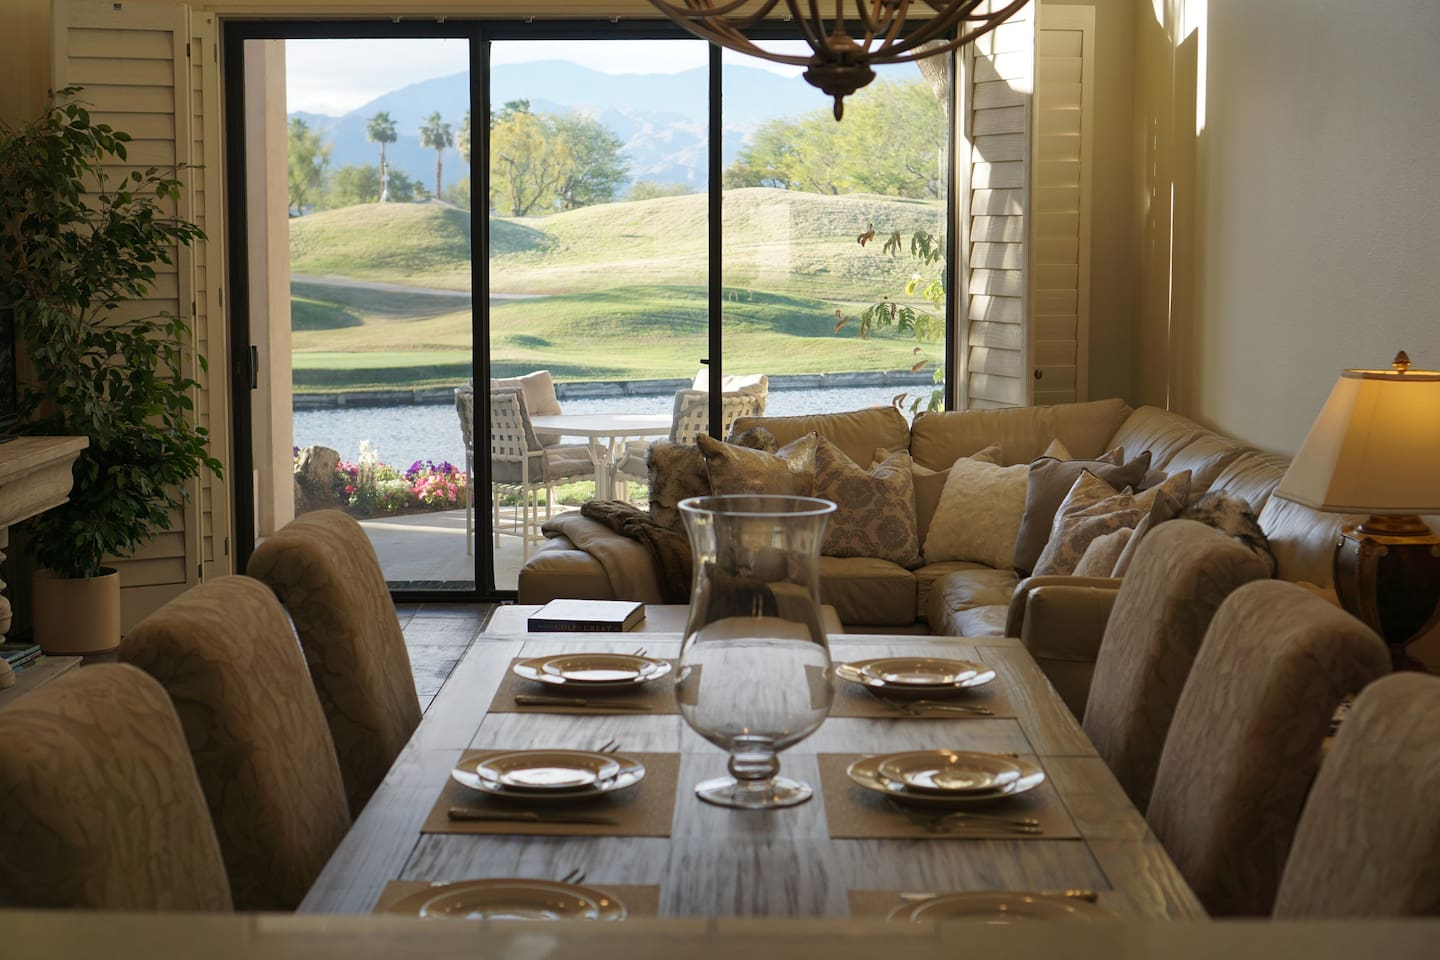 Dine on the solid wood table with amazing views for all guests.